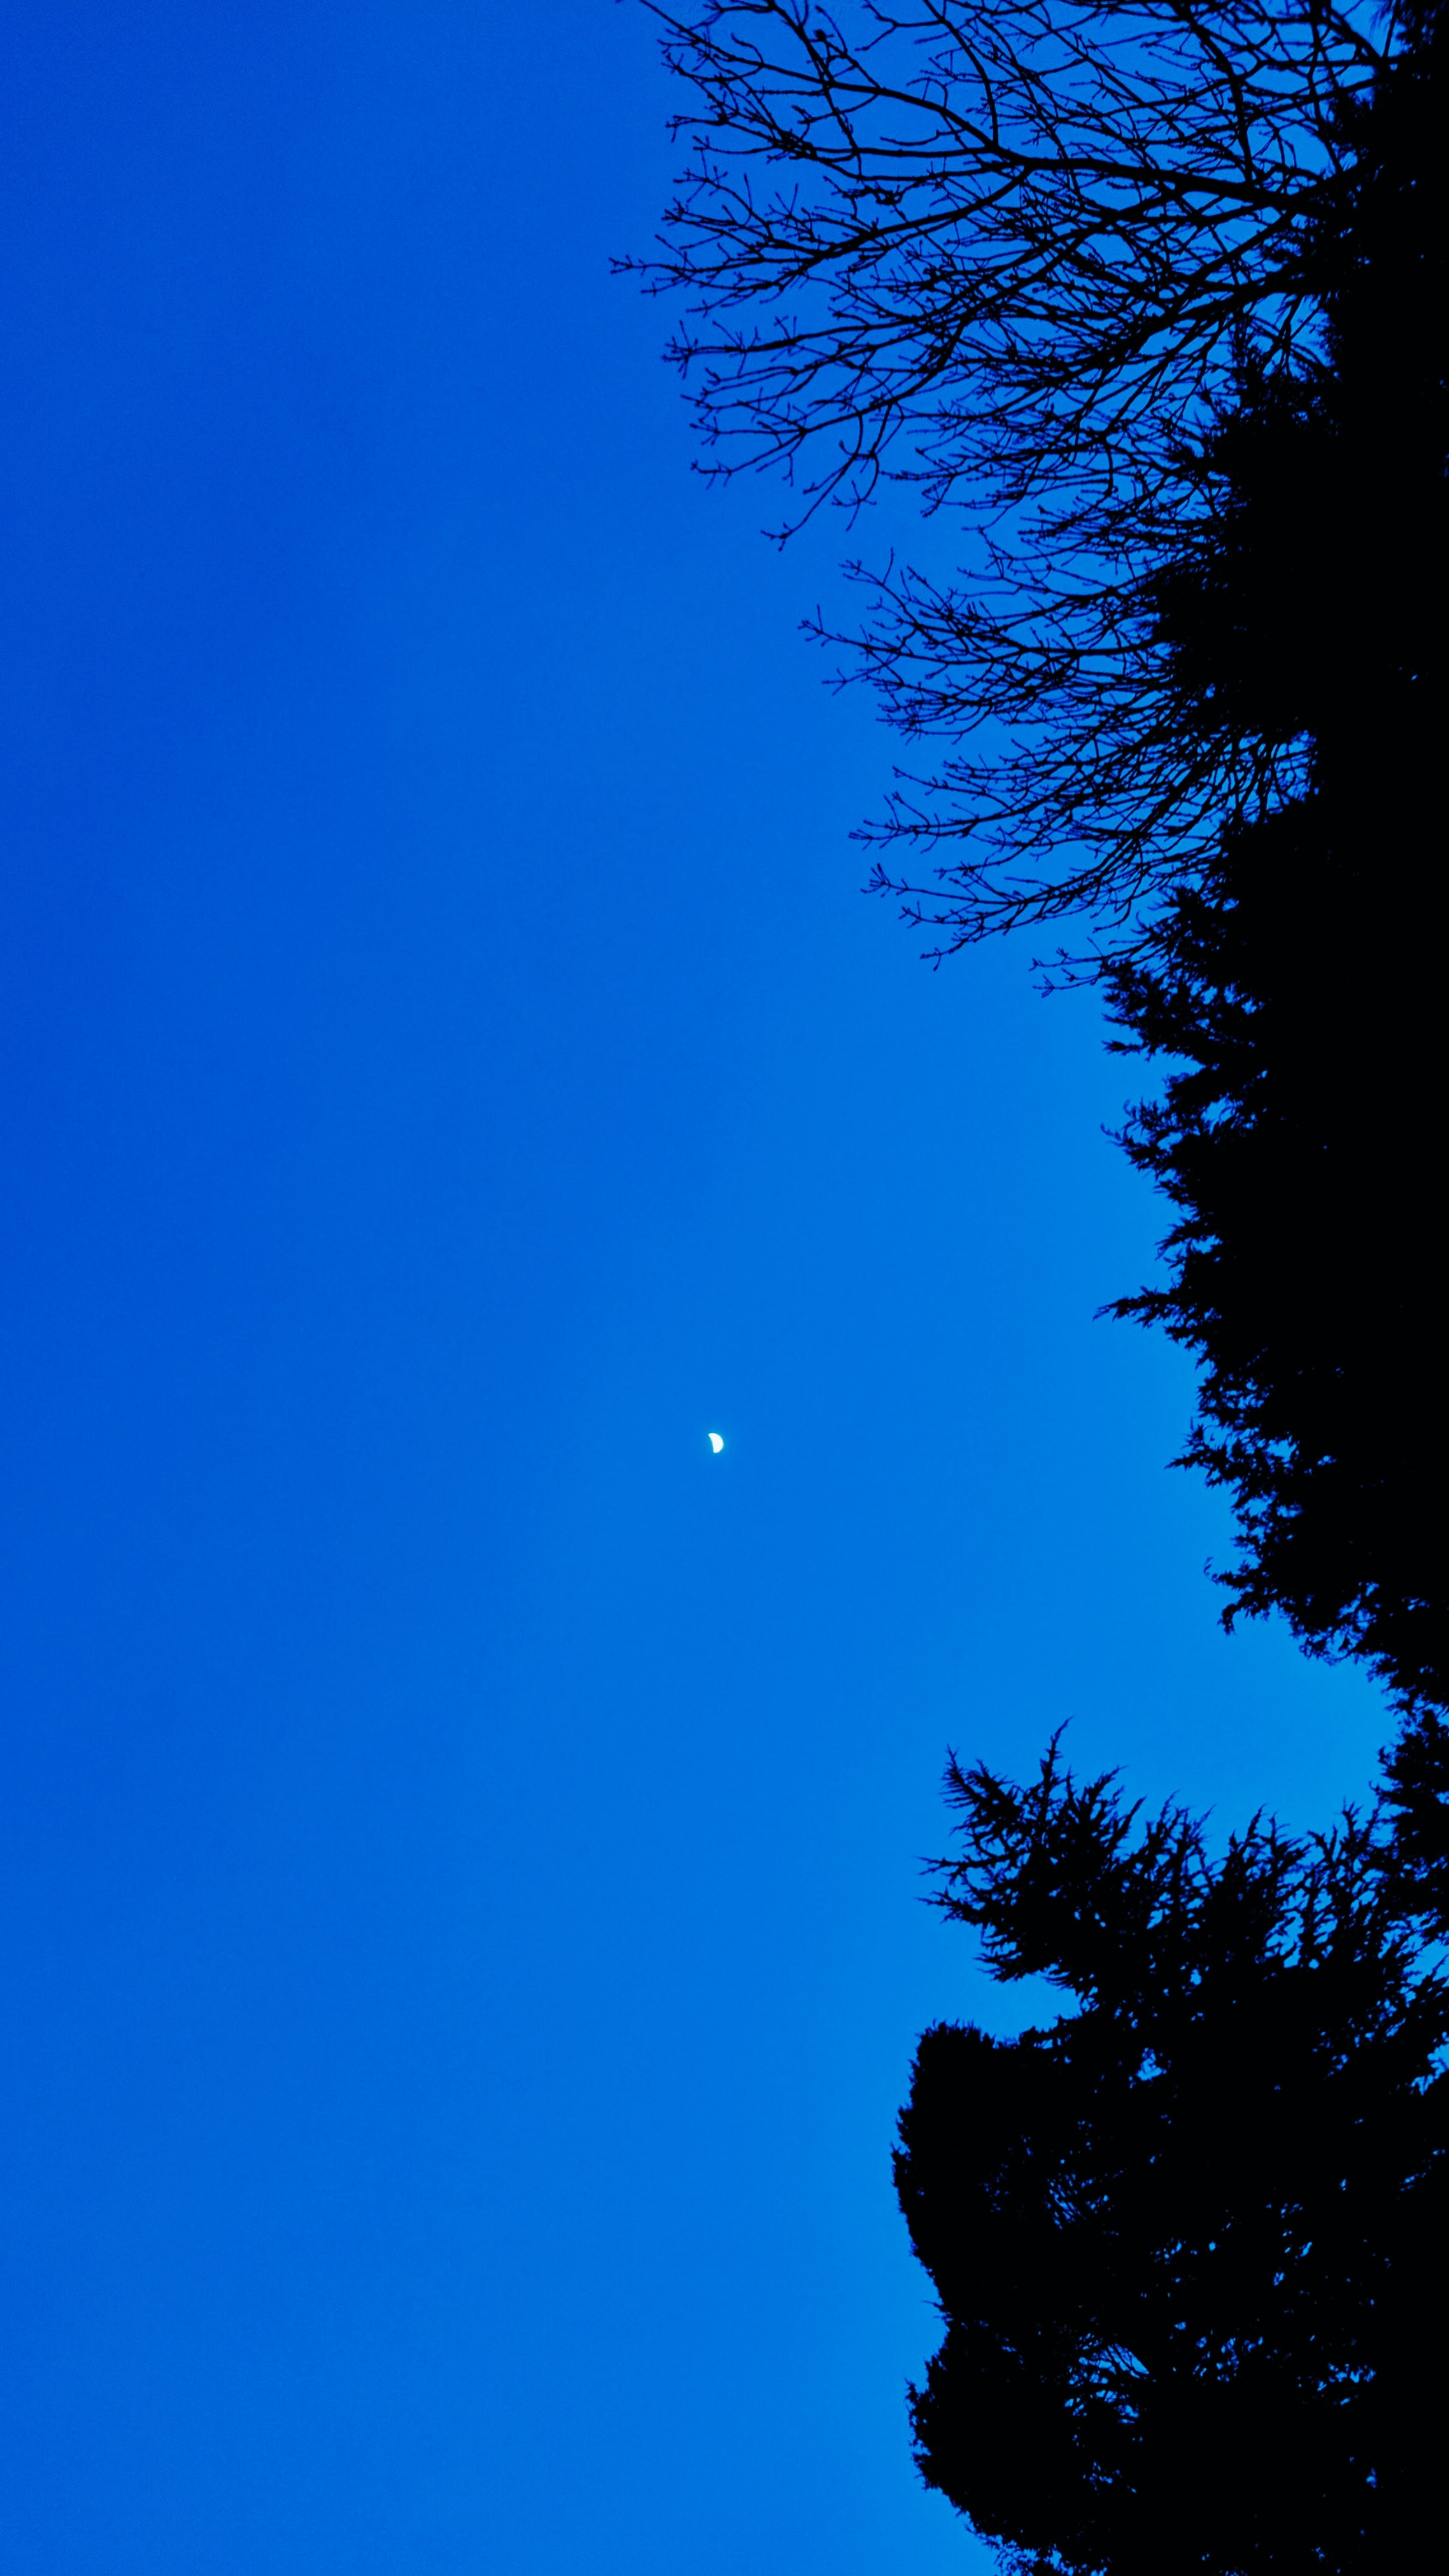 Trees and a blue night sky.